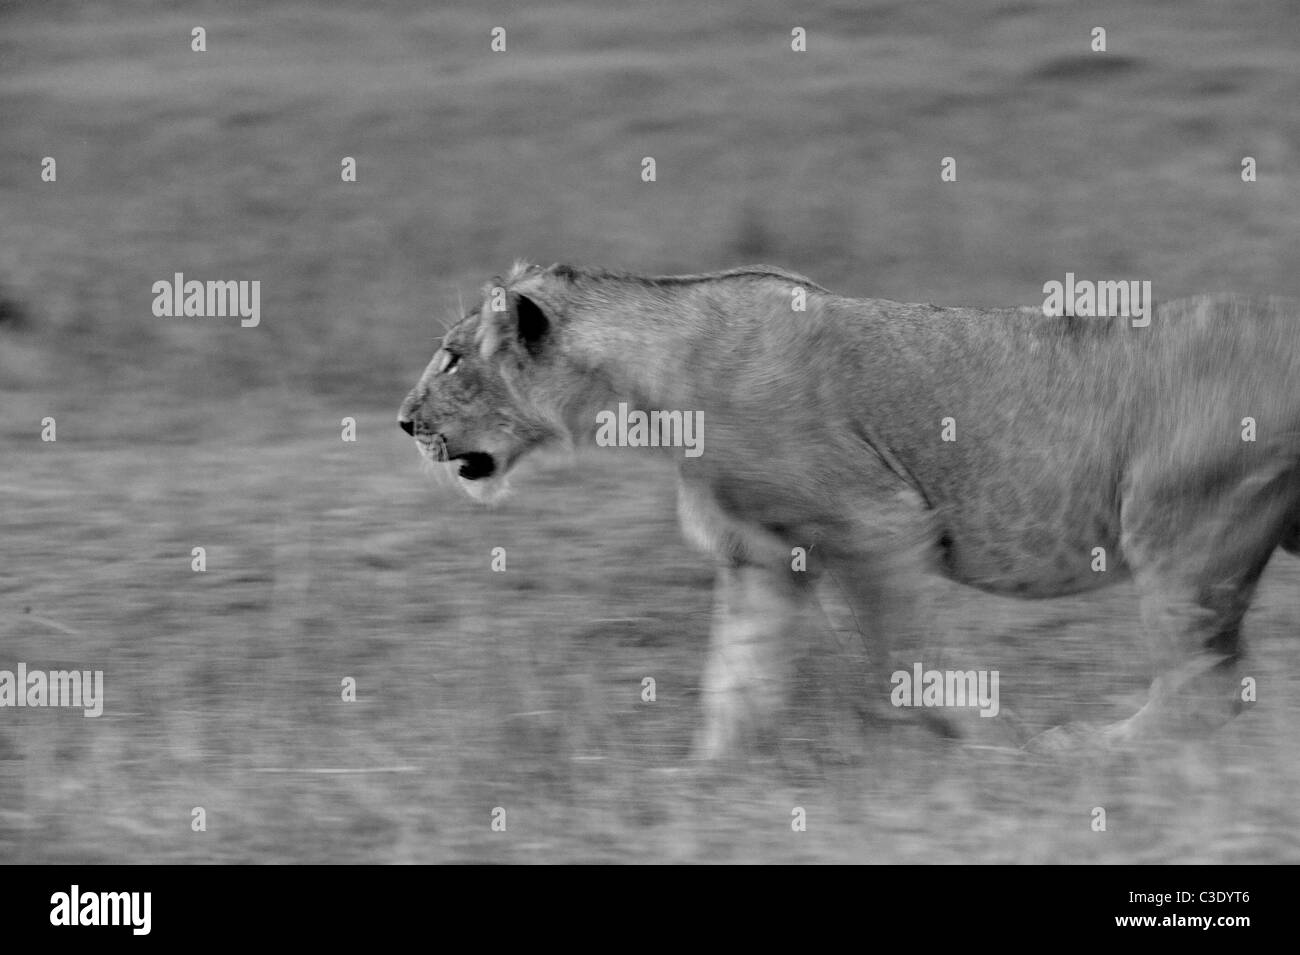 A charging lioness in the forests of Masai Mara, Kenya, Africa - Stock Image